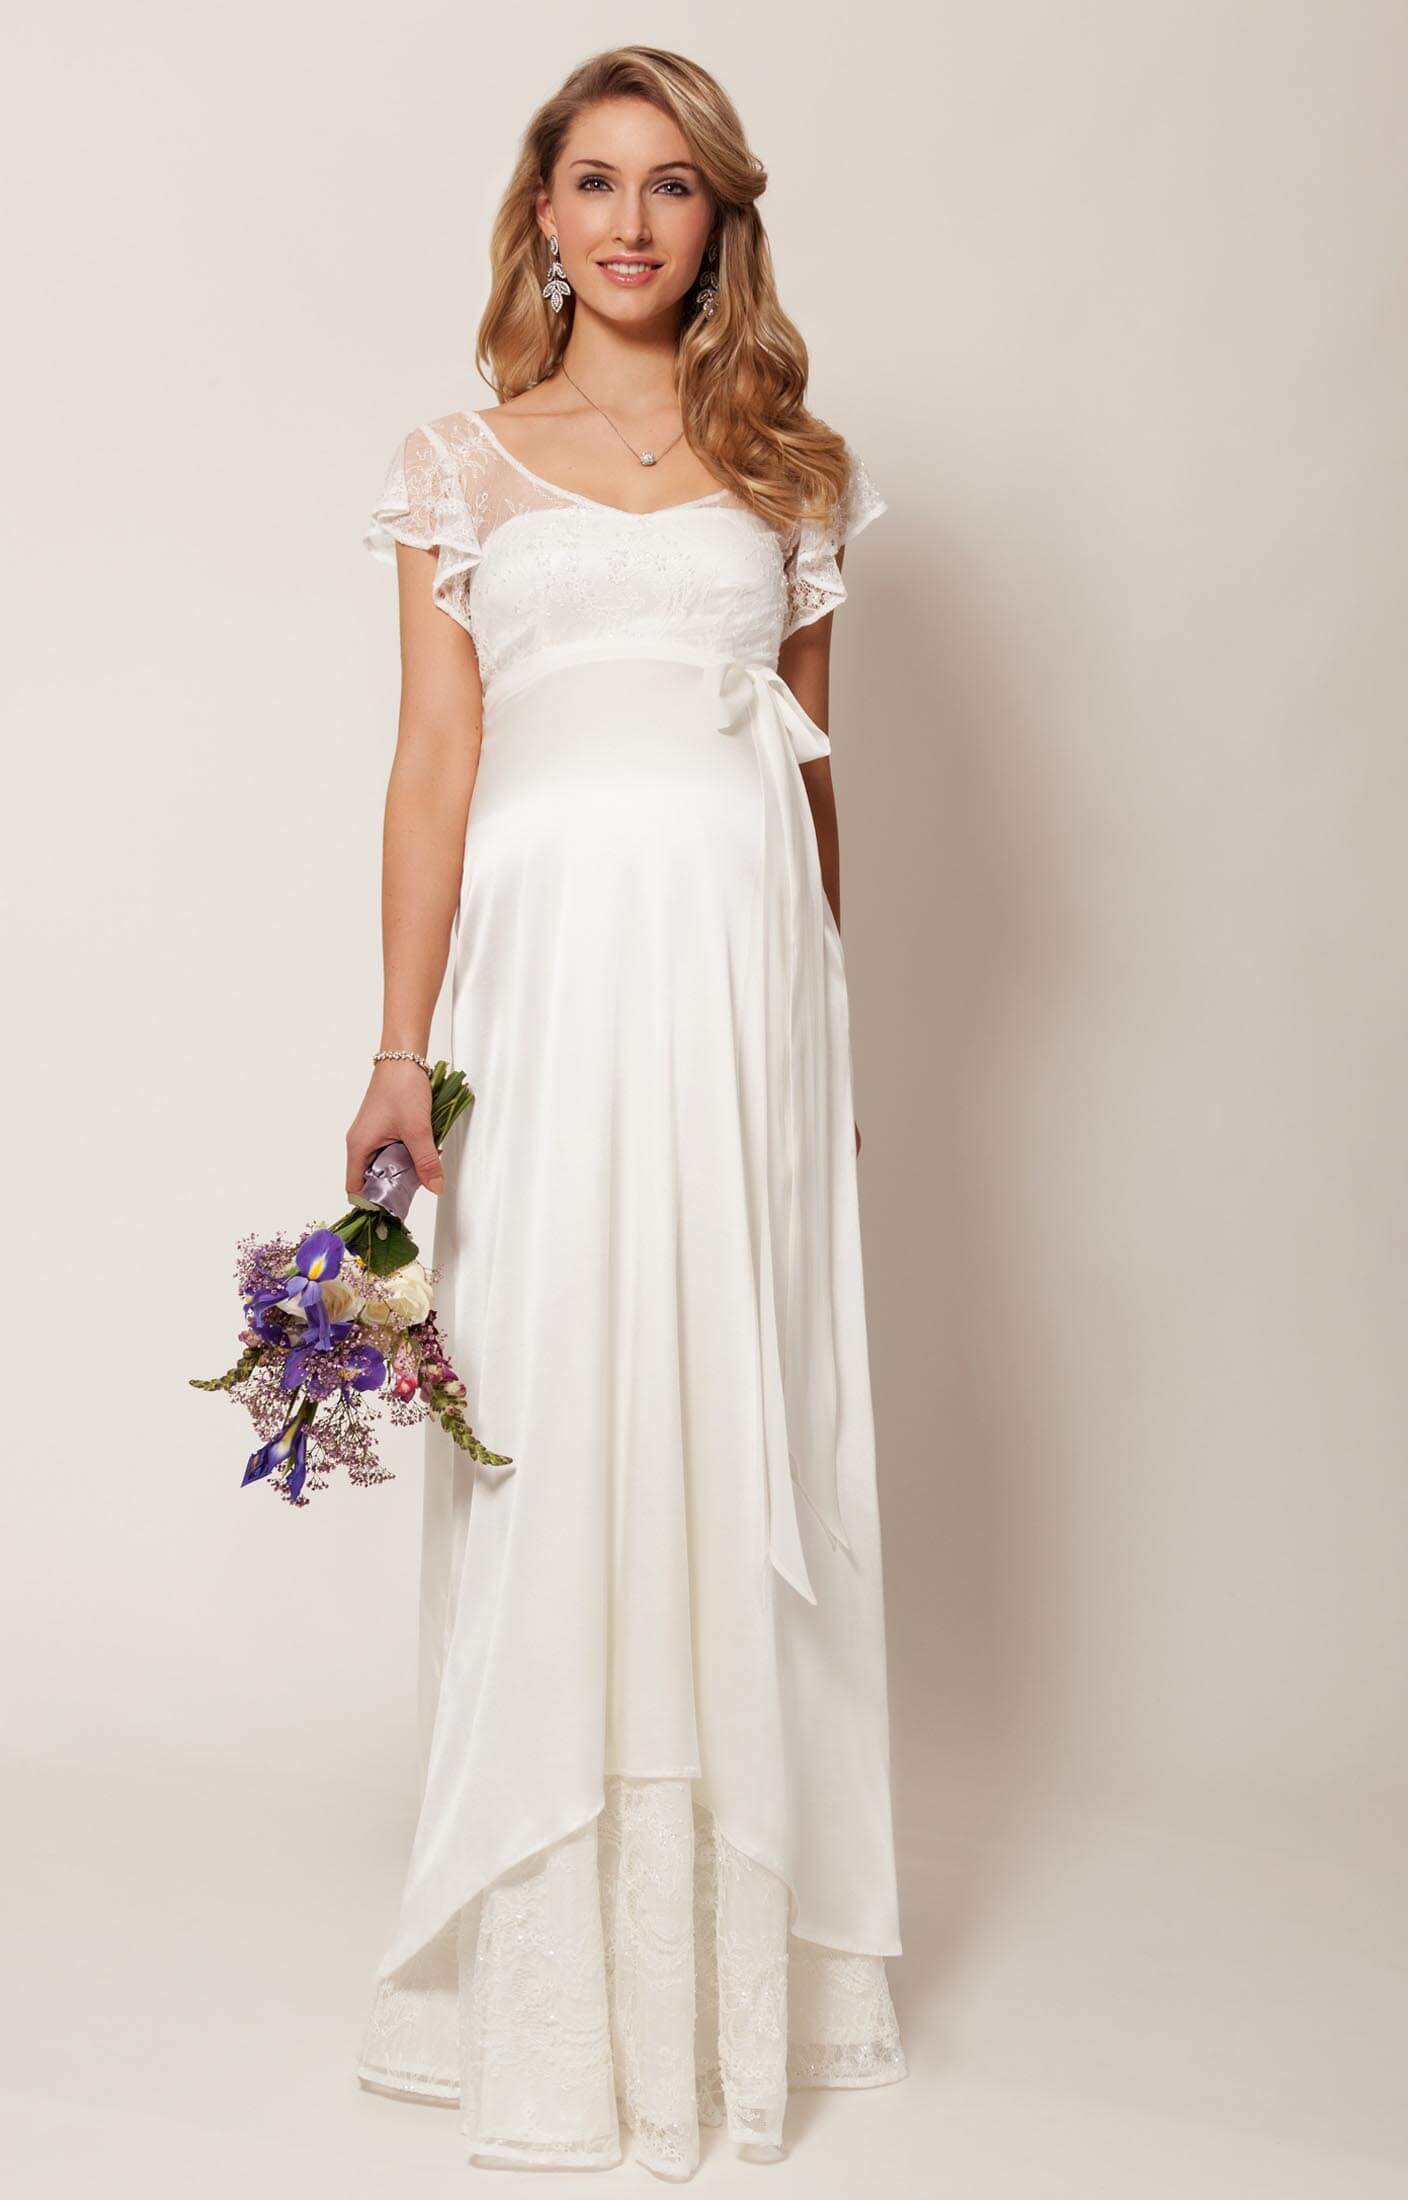 Juliette Maternity Wedding Gown (Ivory) - Maternity Wedding ...